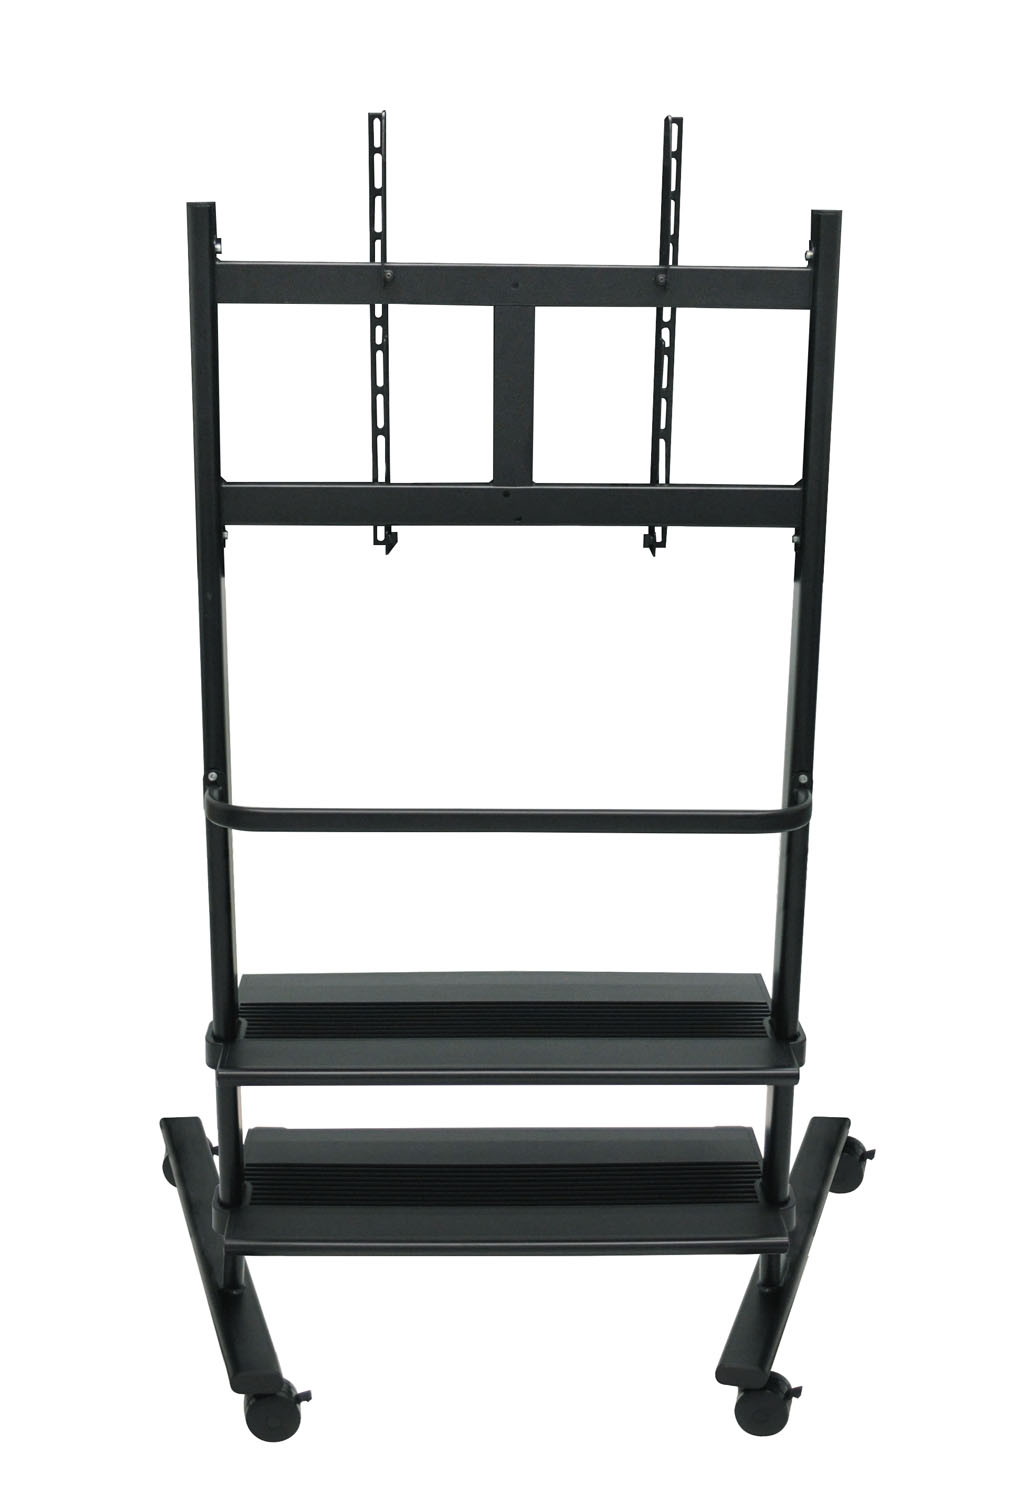 Offex H. Wilson Universal Flat Panel LCD Stand